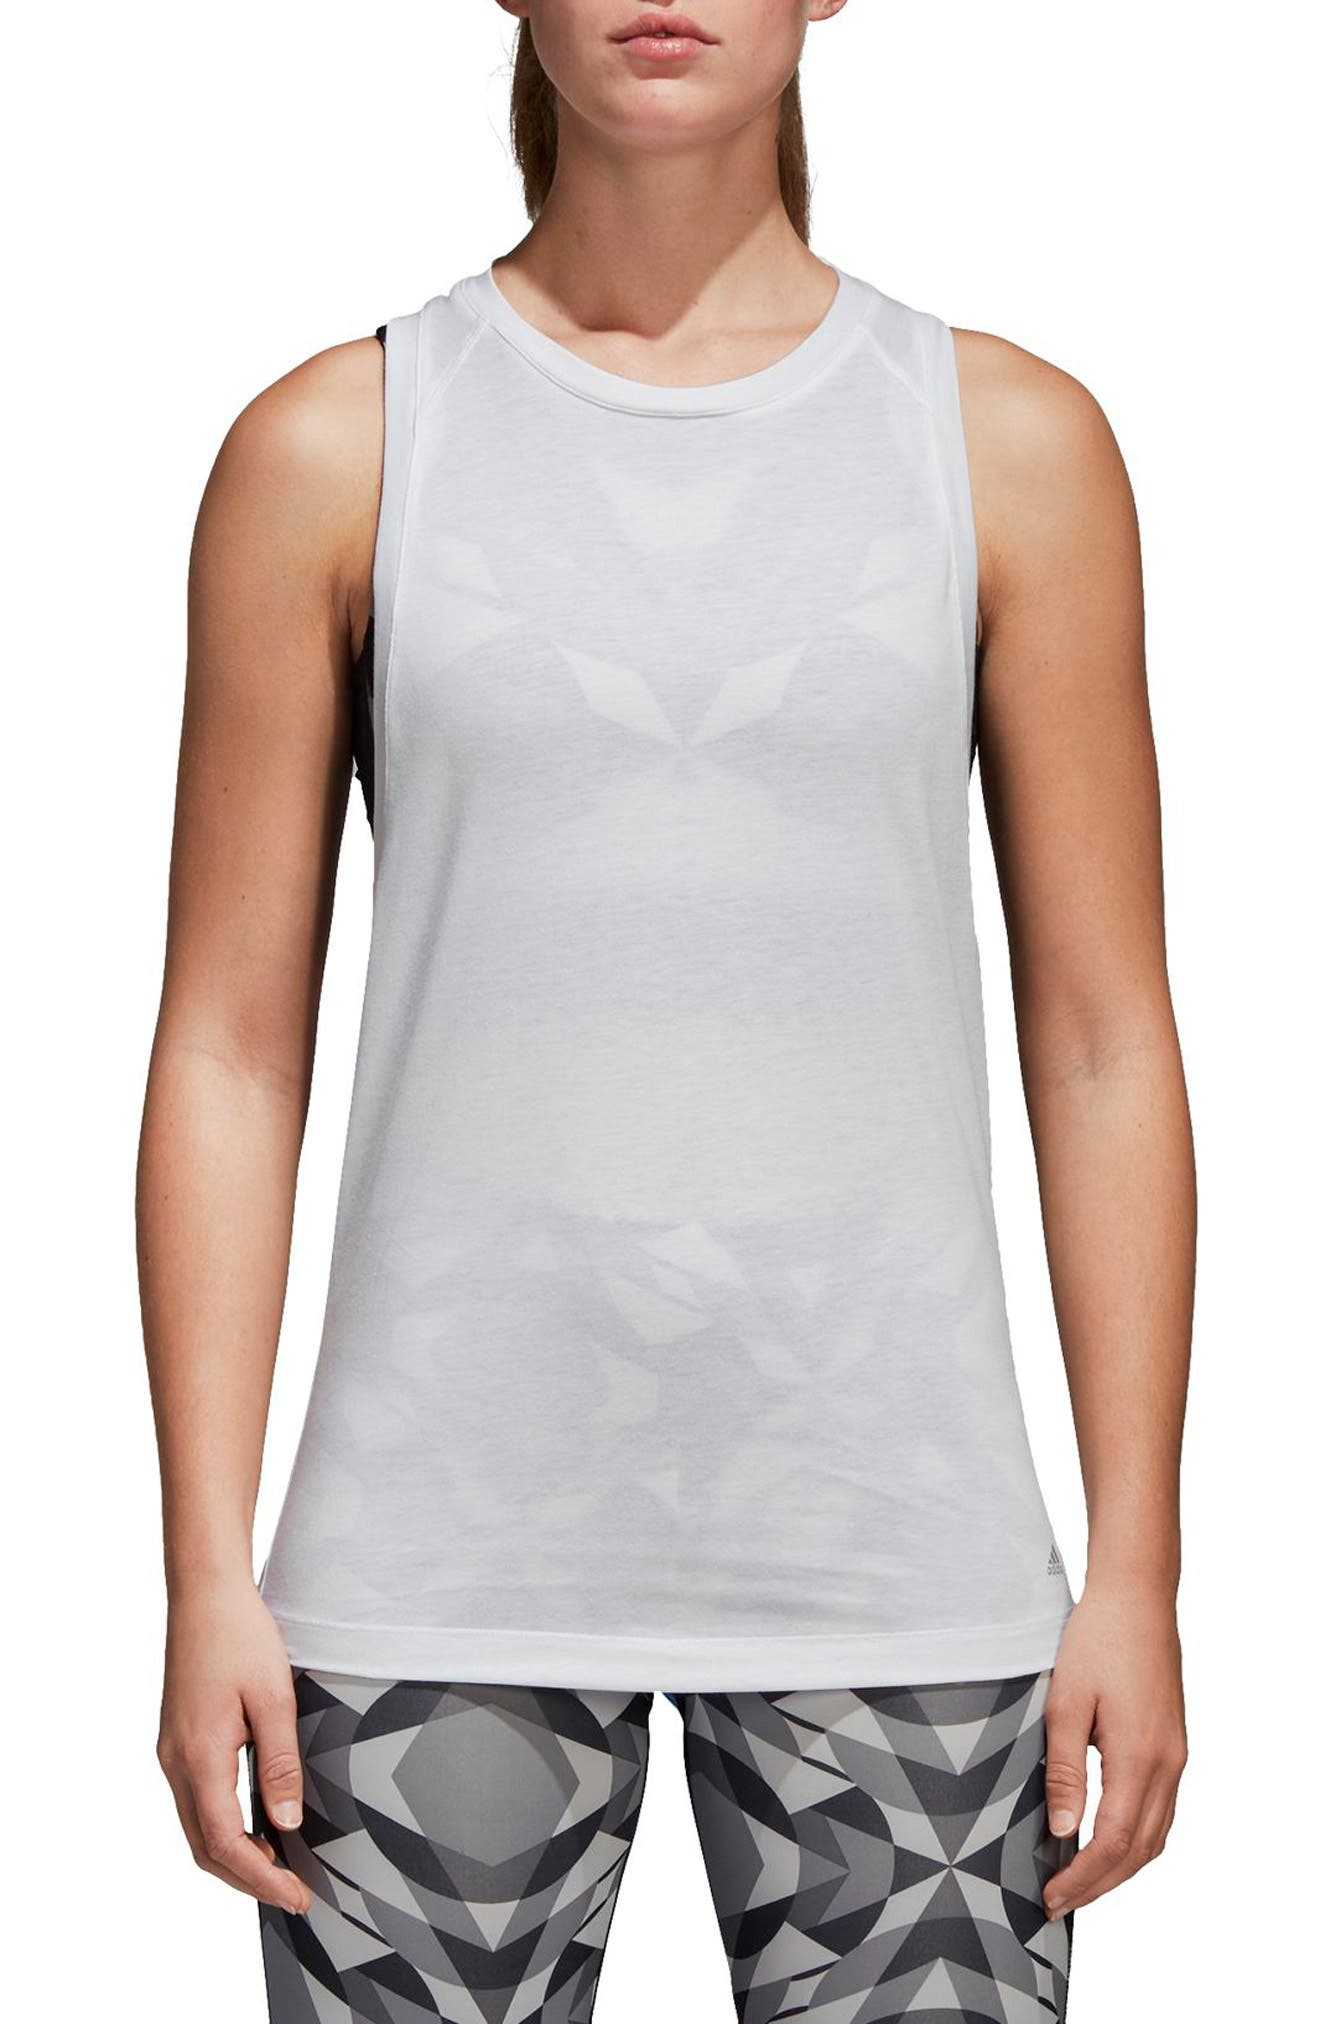 Wanderlust Parley Tank,                             Main thumbnail 1, color,                             White